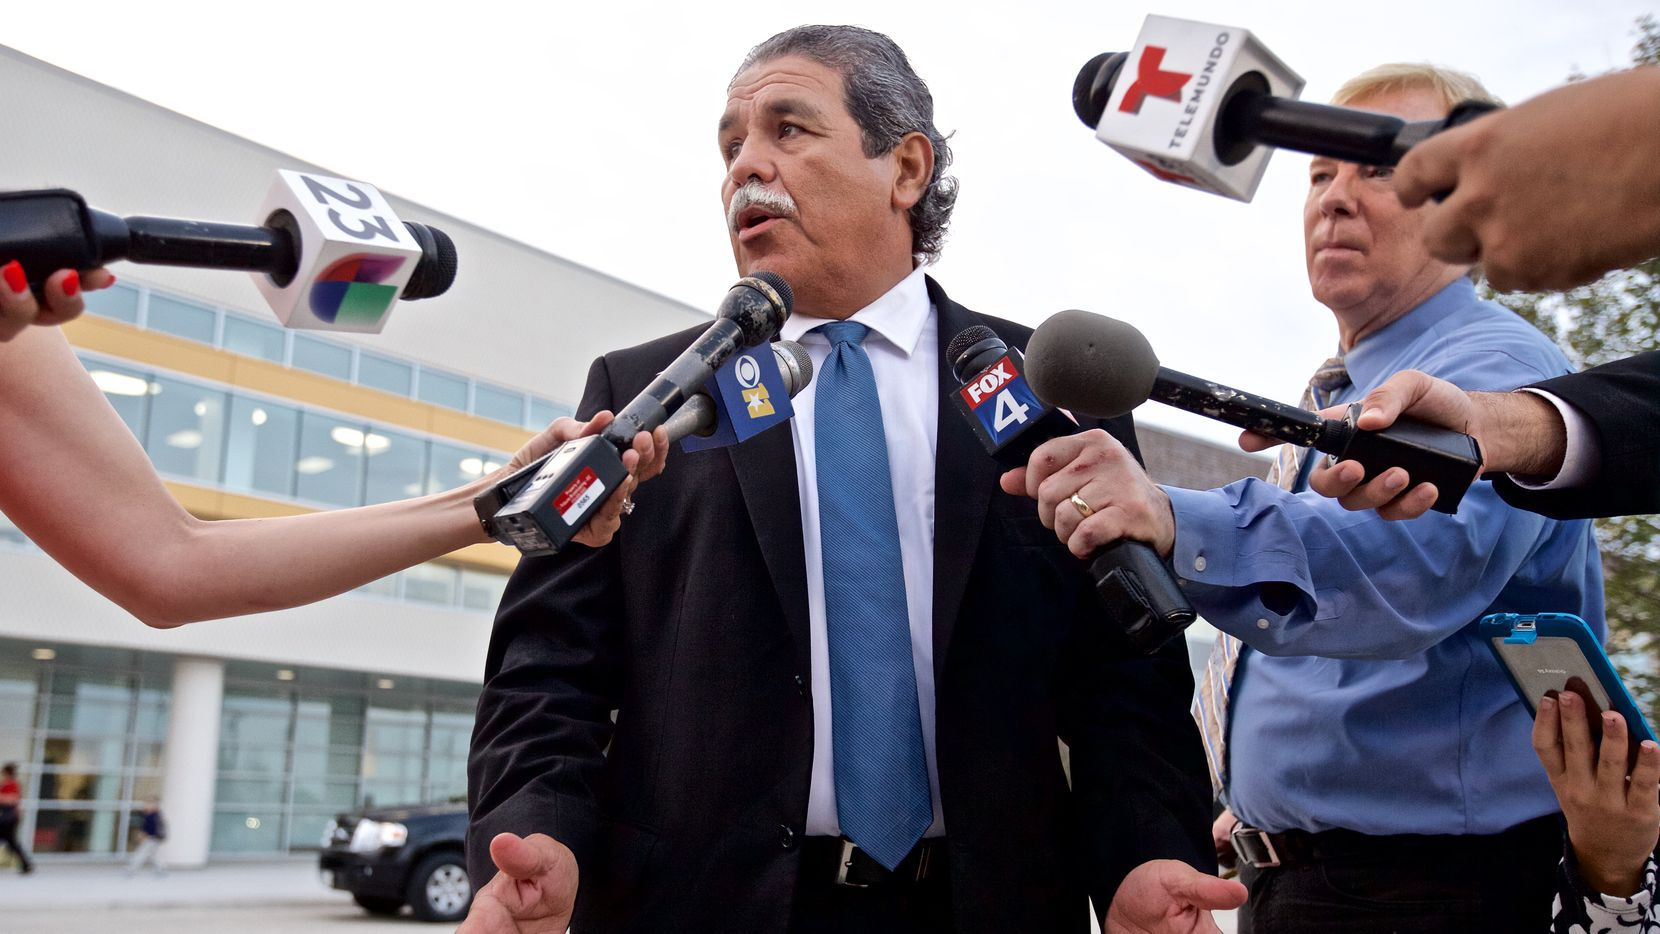 Dallas ISD Superintendent Michael Hinojosa speaks to the media before greeting students on the first day of school.